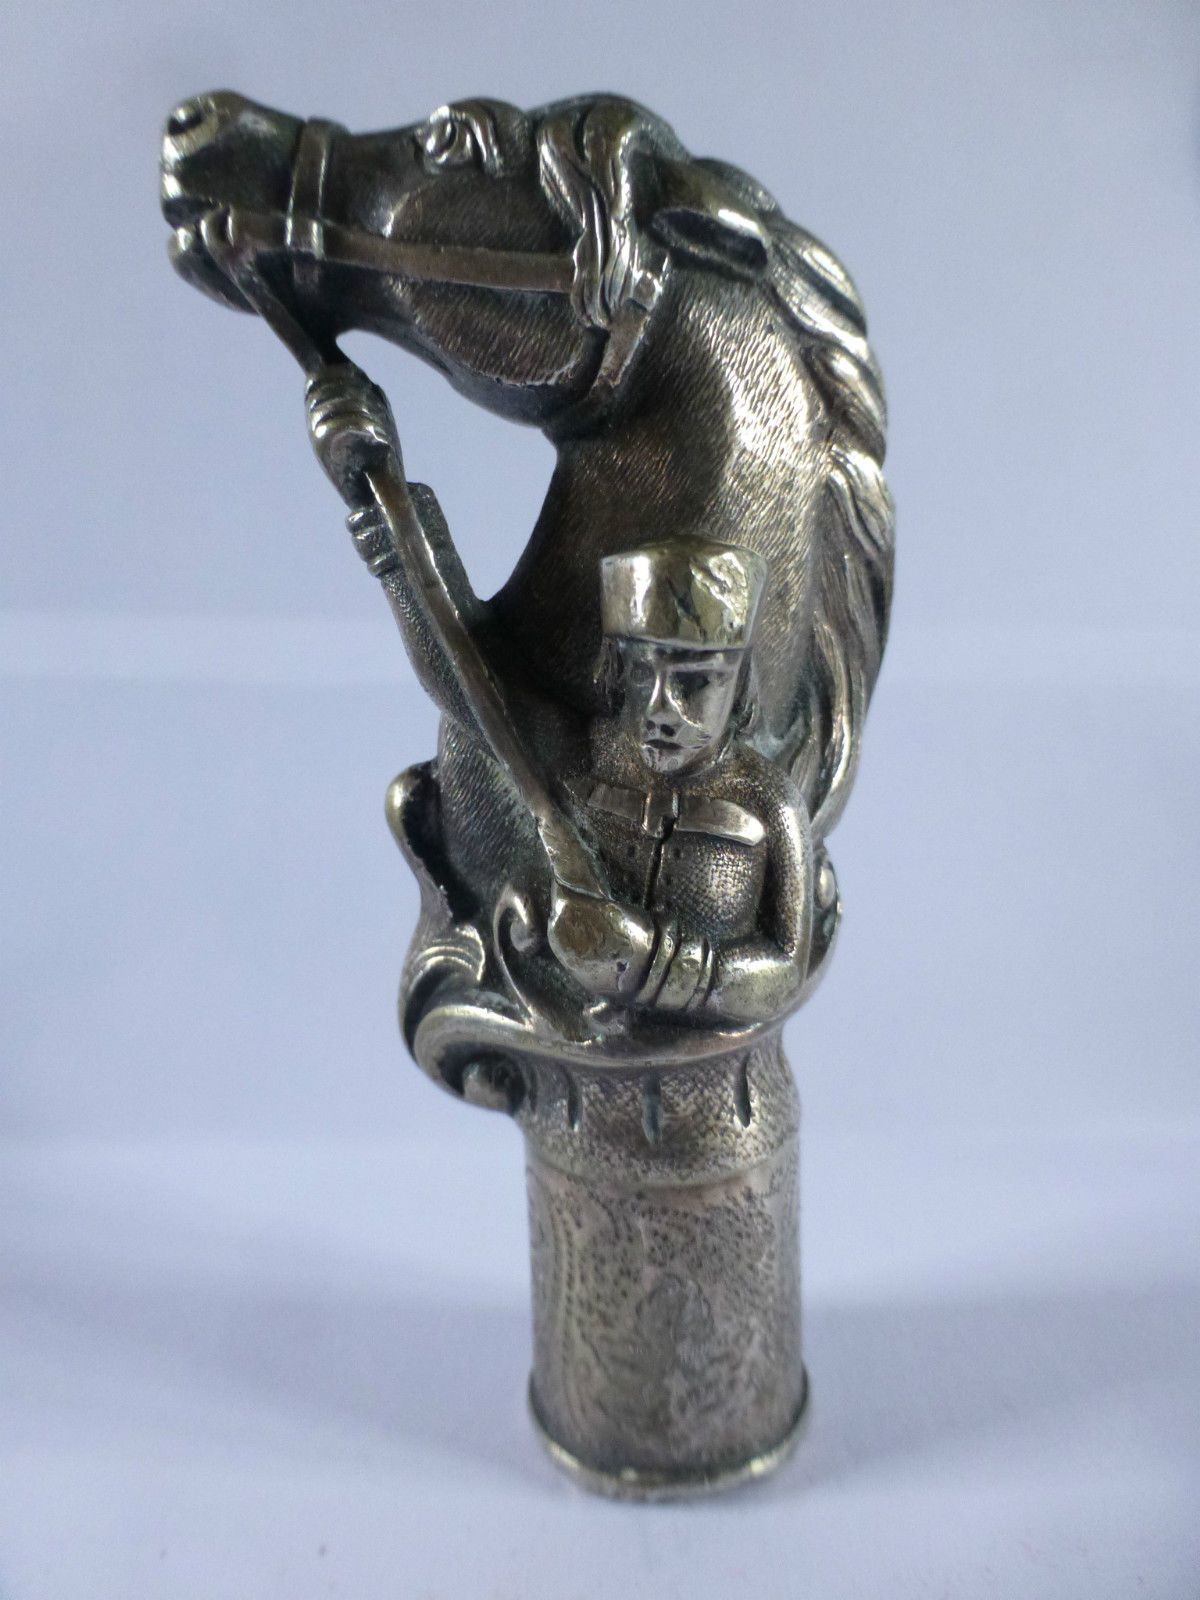 ANTIQUE WALKING STICK TOP with horse  soldier 1900-1920